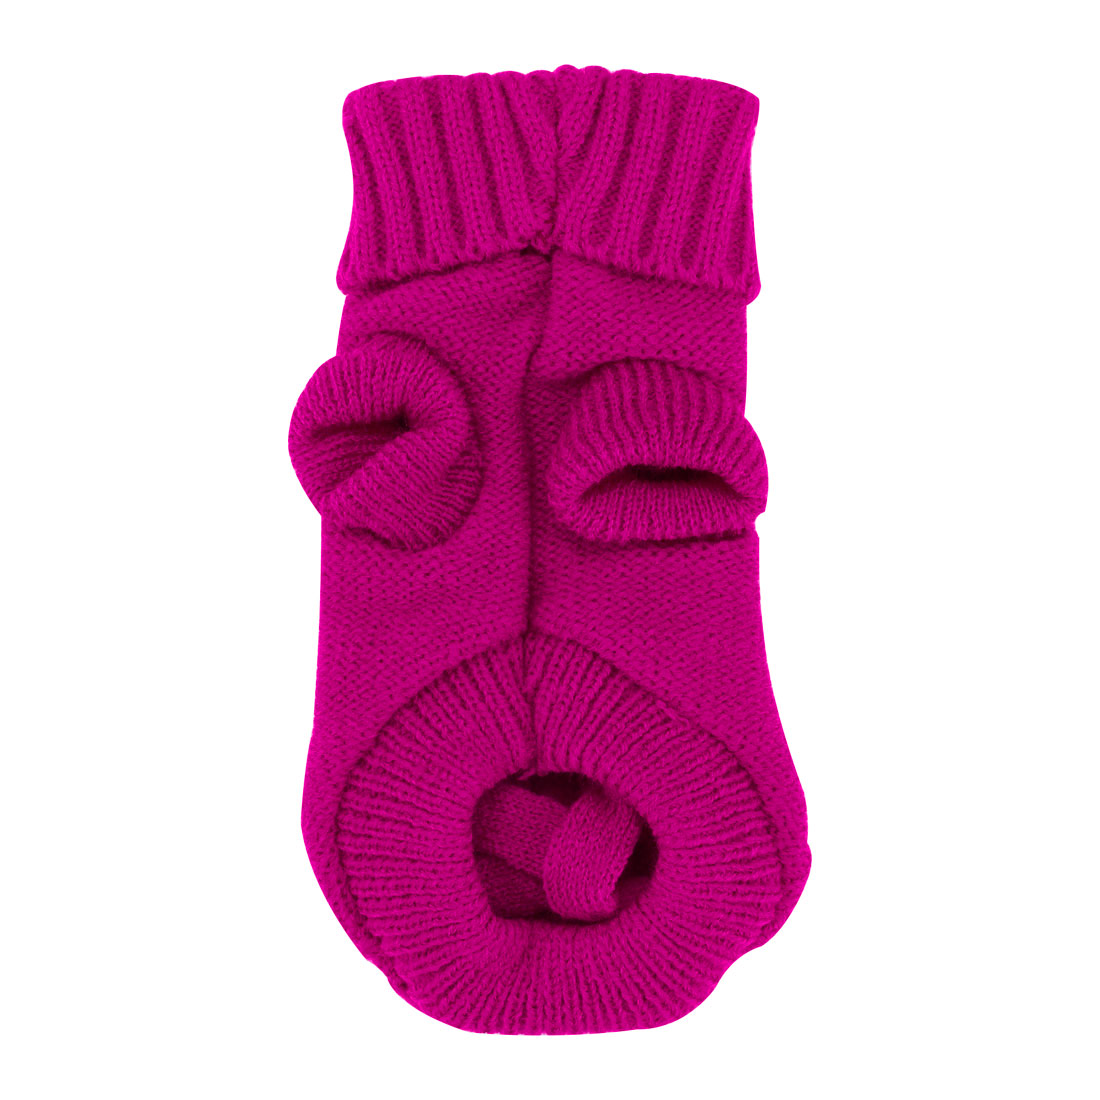 Pet Dogs Sweater Knitwear Coat Warm Dogs Clothes Winter Pet Custome Fuchsia, M